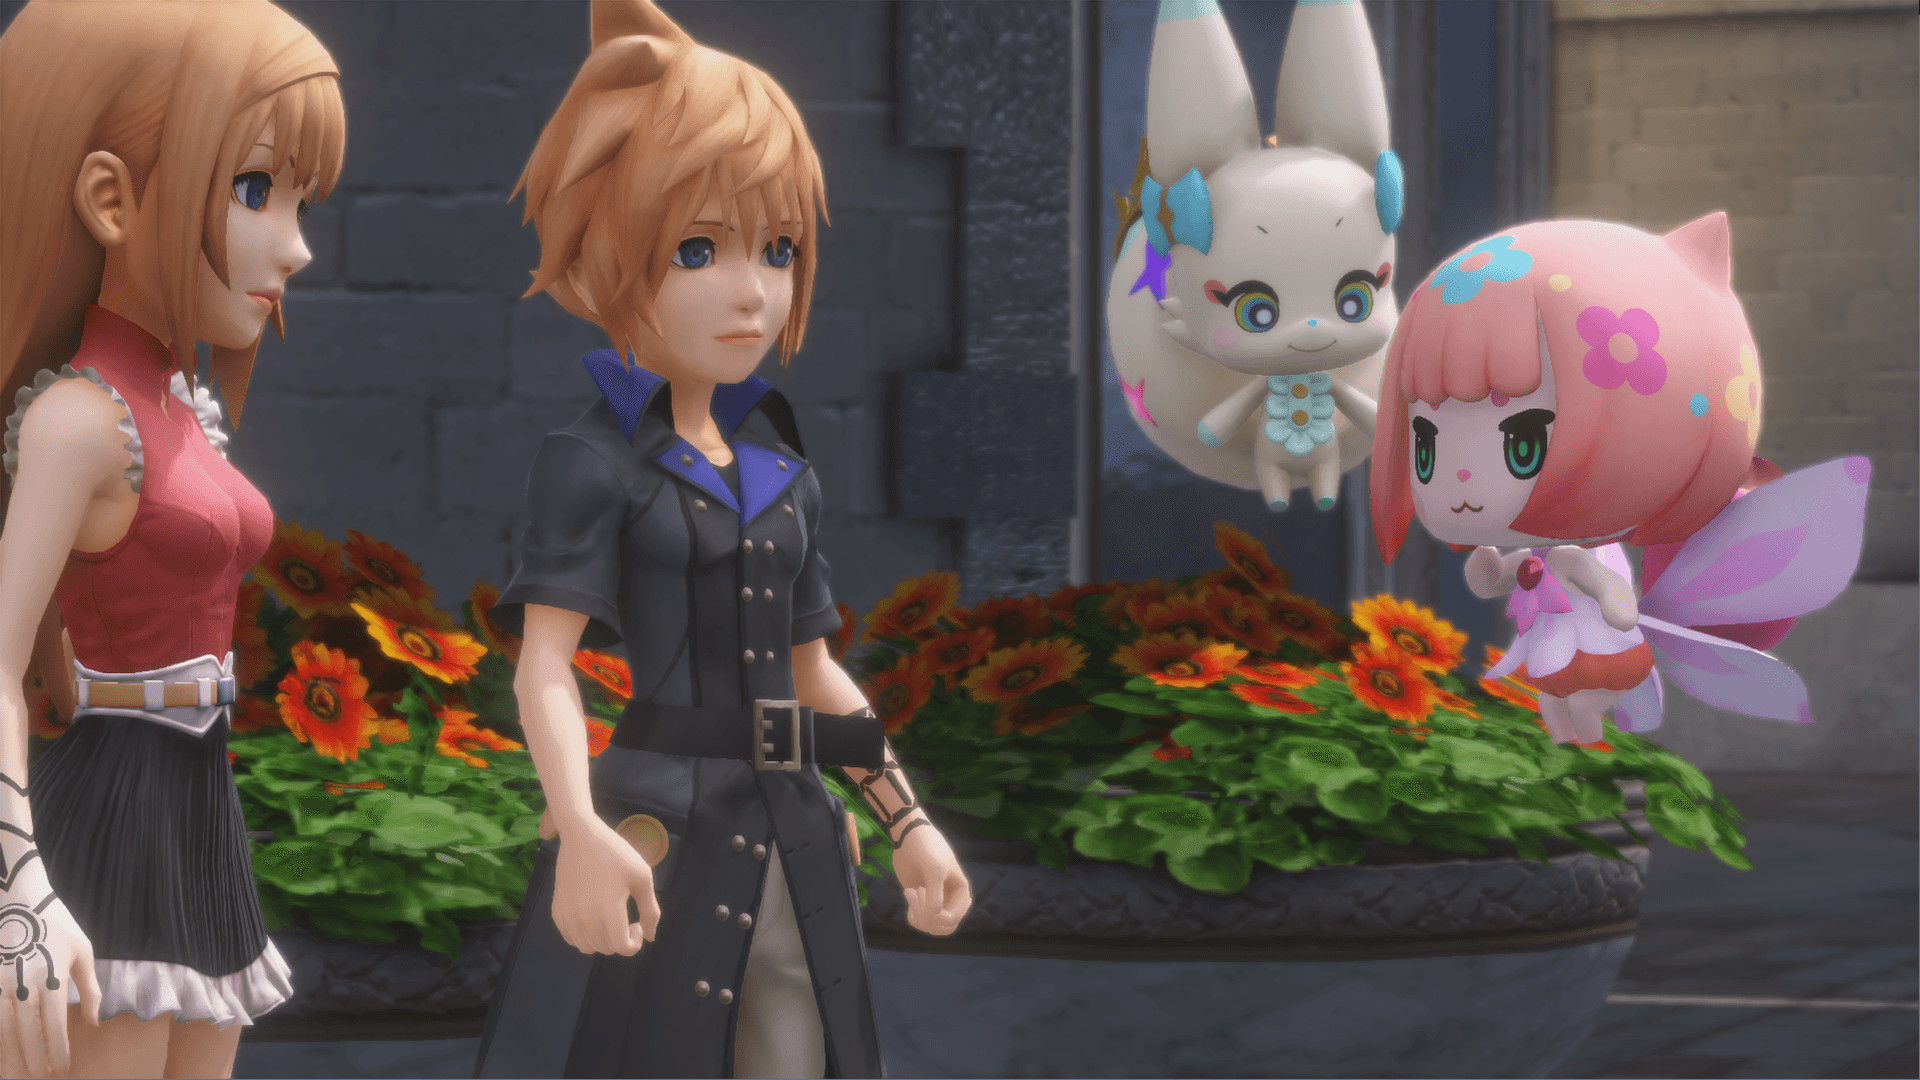 World Of Final Fantasy Maxima Releasing On November 6 For Nintendo Switch PlayStation 4 Xbox